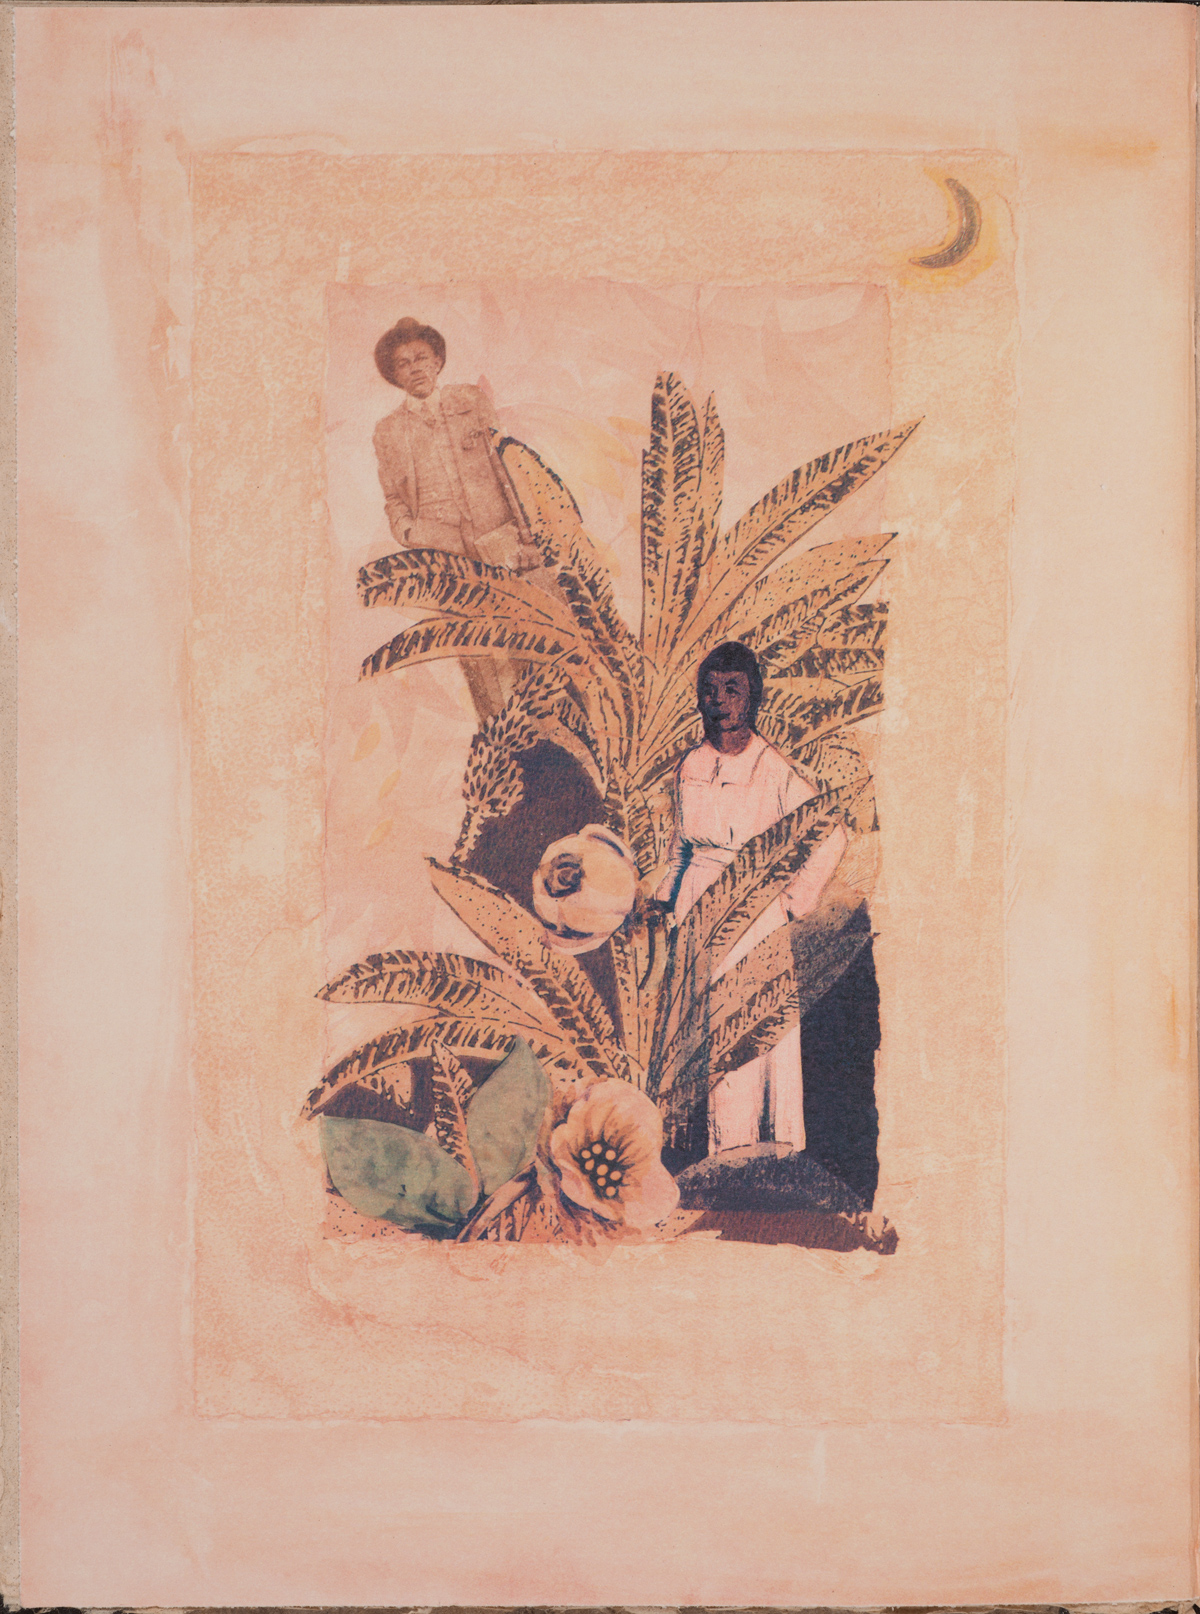 Betye Saar (b. 1926). Illustration for Zora Neale Hurston's Bookmarks in the Pages of Life (2000). Copyright Betye Saar.